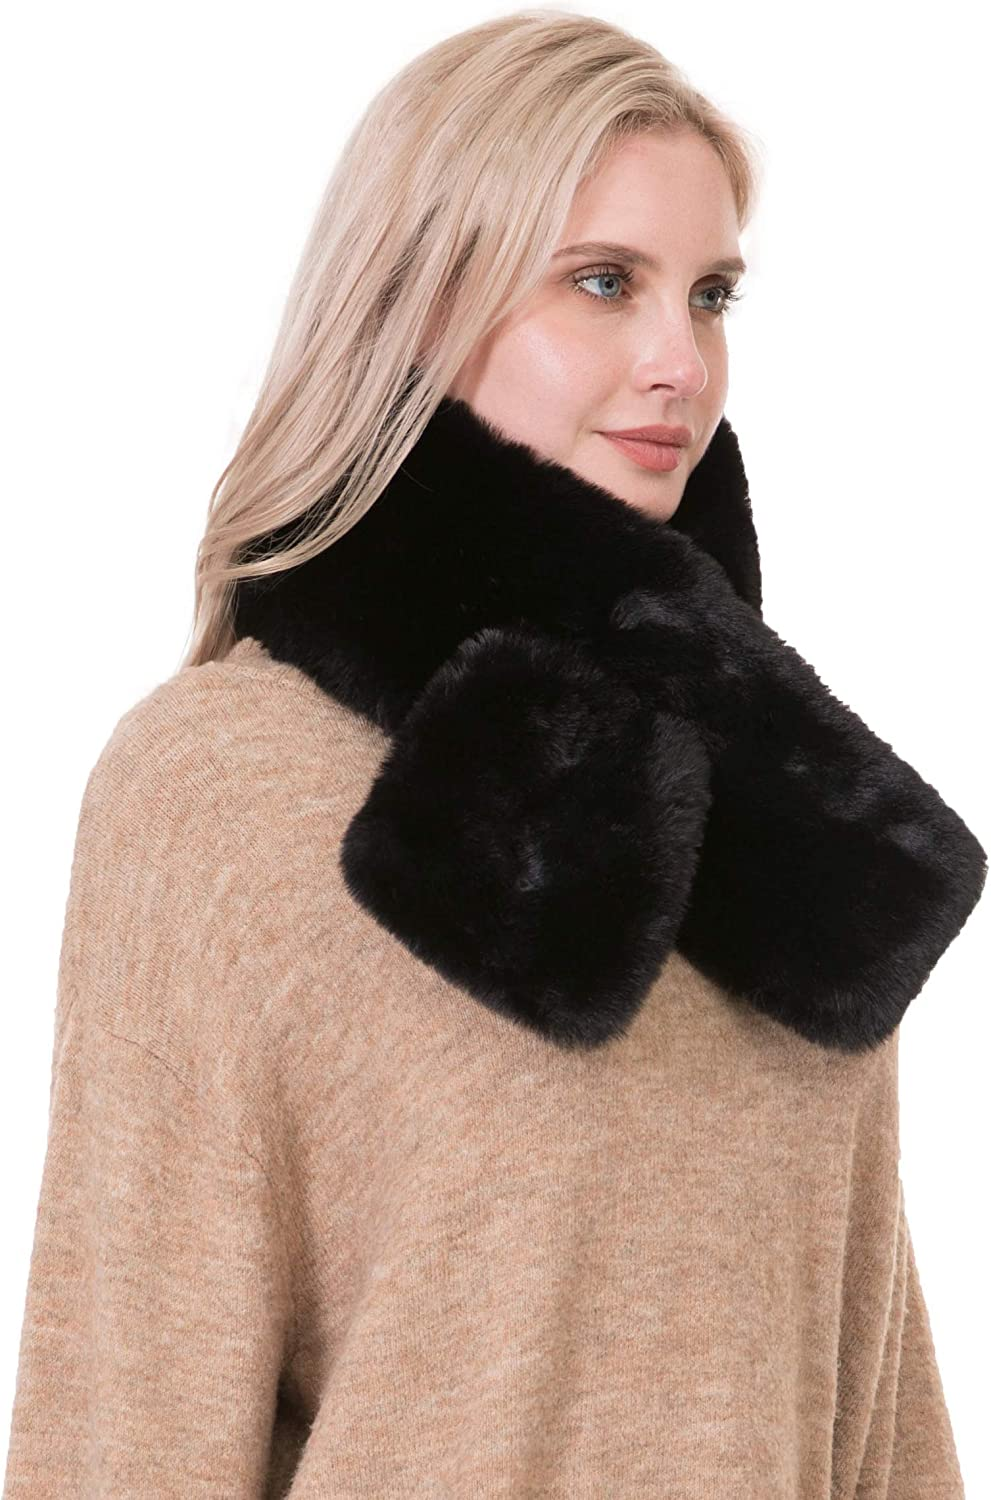 Rulala Fancy Faux Fur Scarf for Winter Rect Soft Cozy Warm Women Over item handling ☆ Manufacturer direct delivery